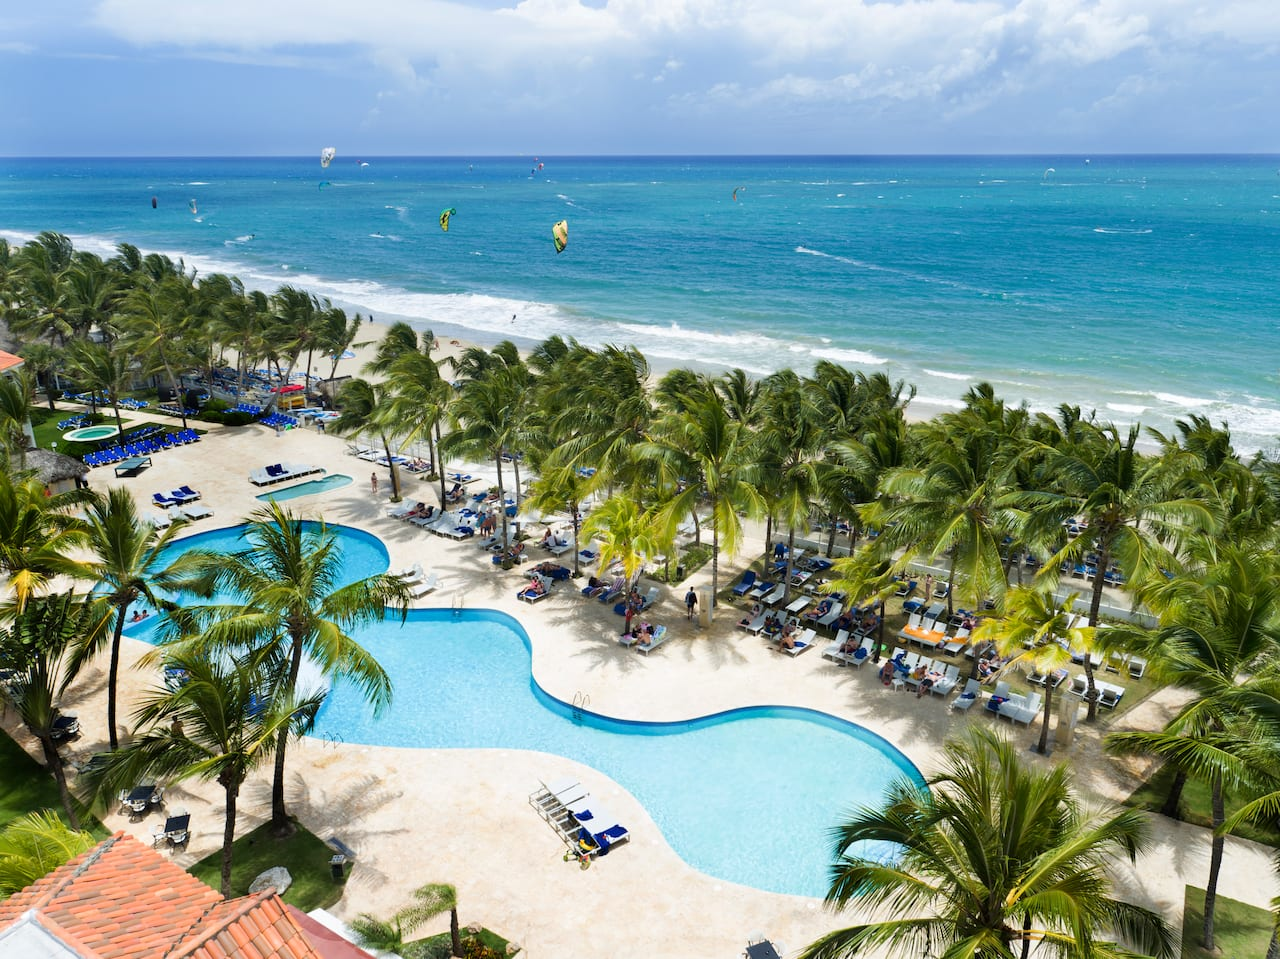 Viva Wyndham Tangerine - An All-Inclusive Resort in  Puerto Plata,  DOMINICAN REPUBLIC